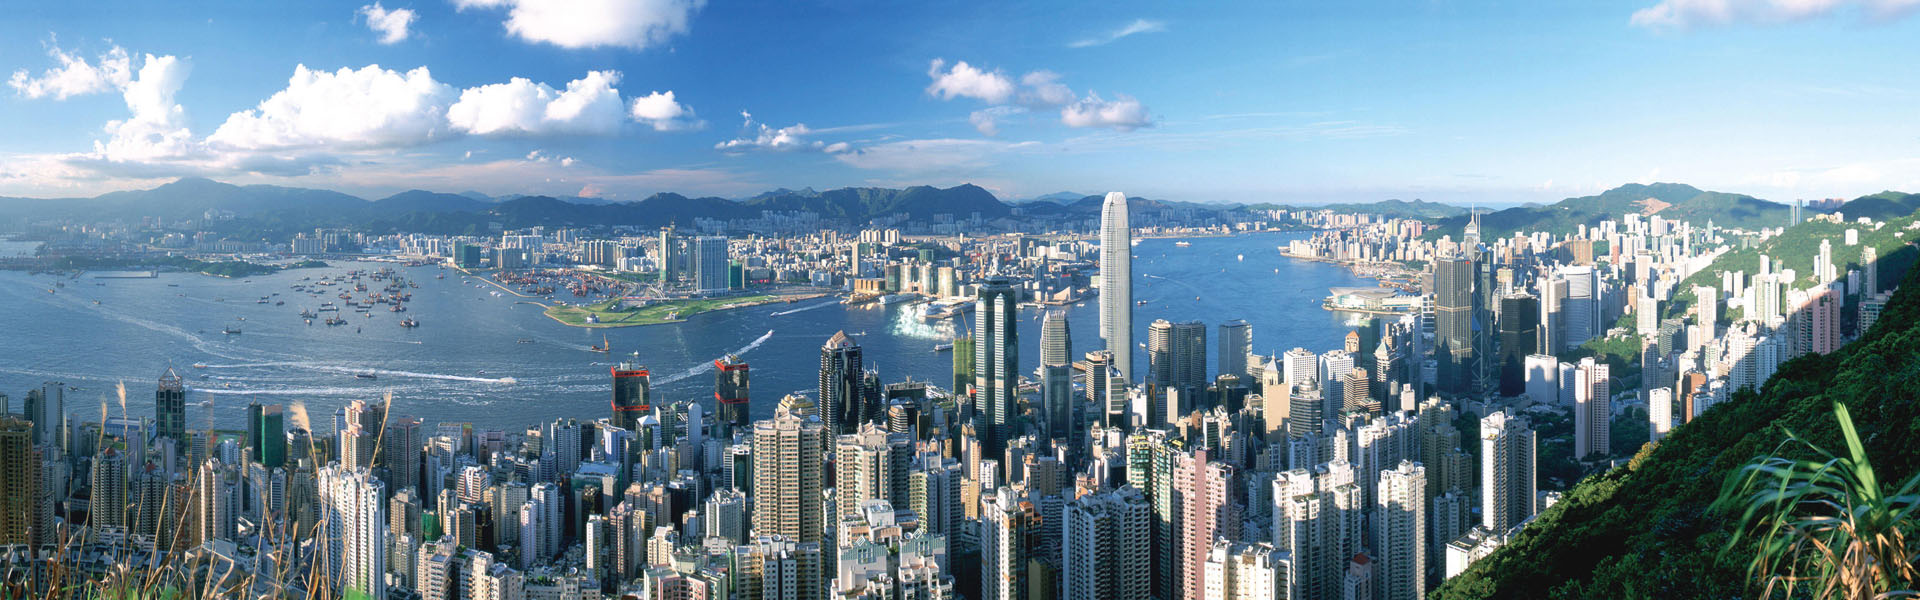 "<h3 style=""padding-left: 20px;margin-top:15px;color: #ffffff;""> 4 NIGHTS HONG KONG PACKAGE</h3> <p style=""padding-left: 20px;font-size:16px;margin-top:15px;"">Call Us for Details </p>"